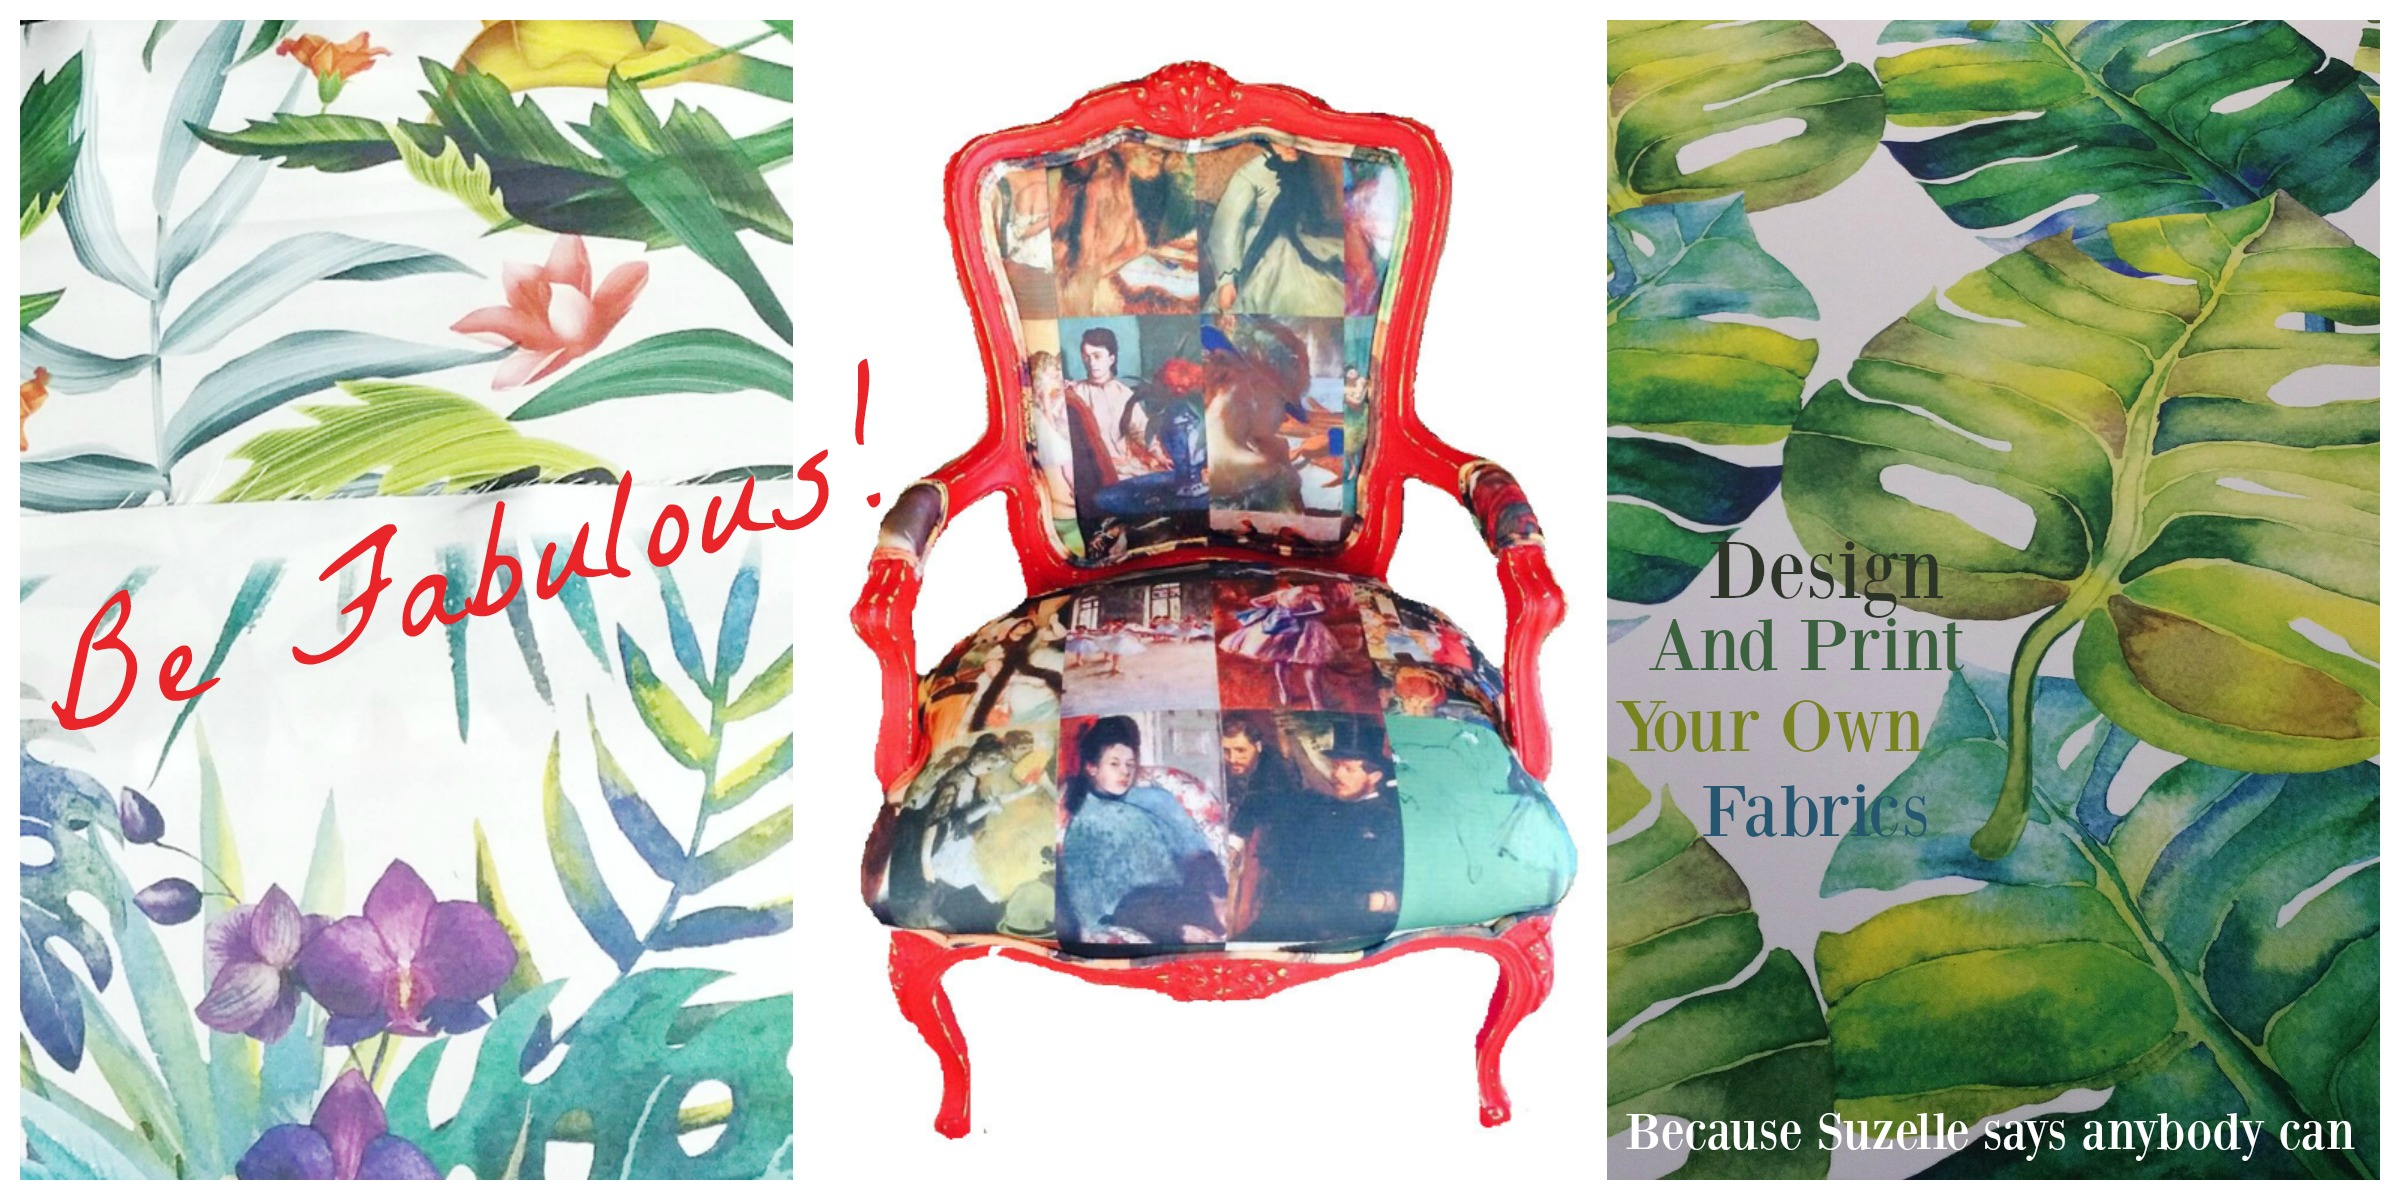 Be fabulous and design and print your own fabrics